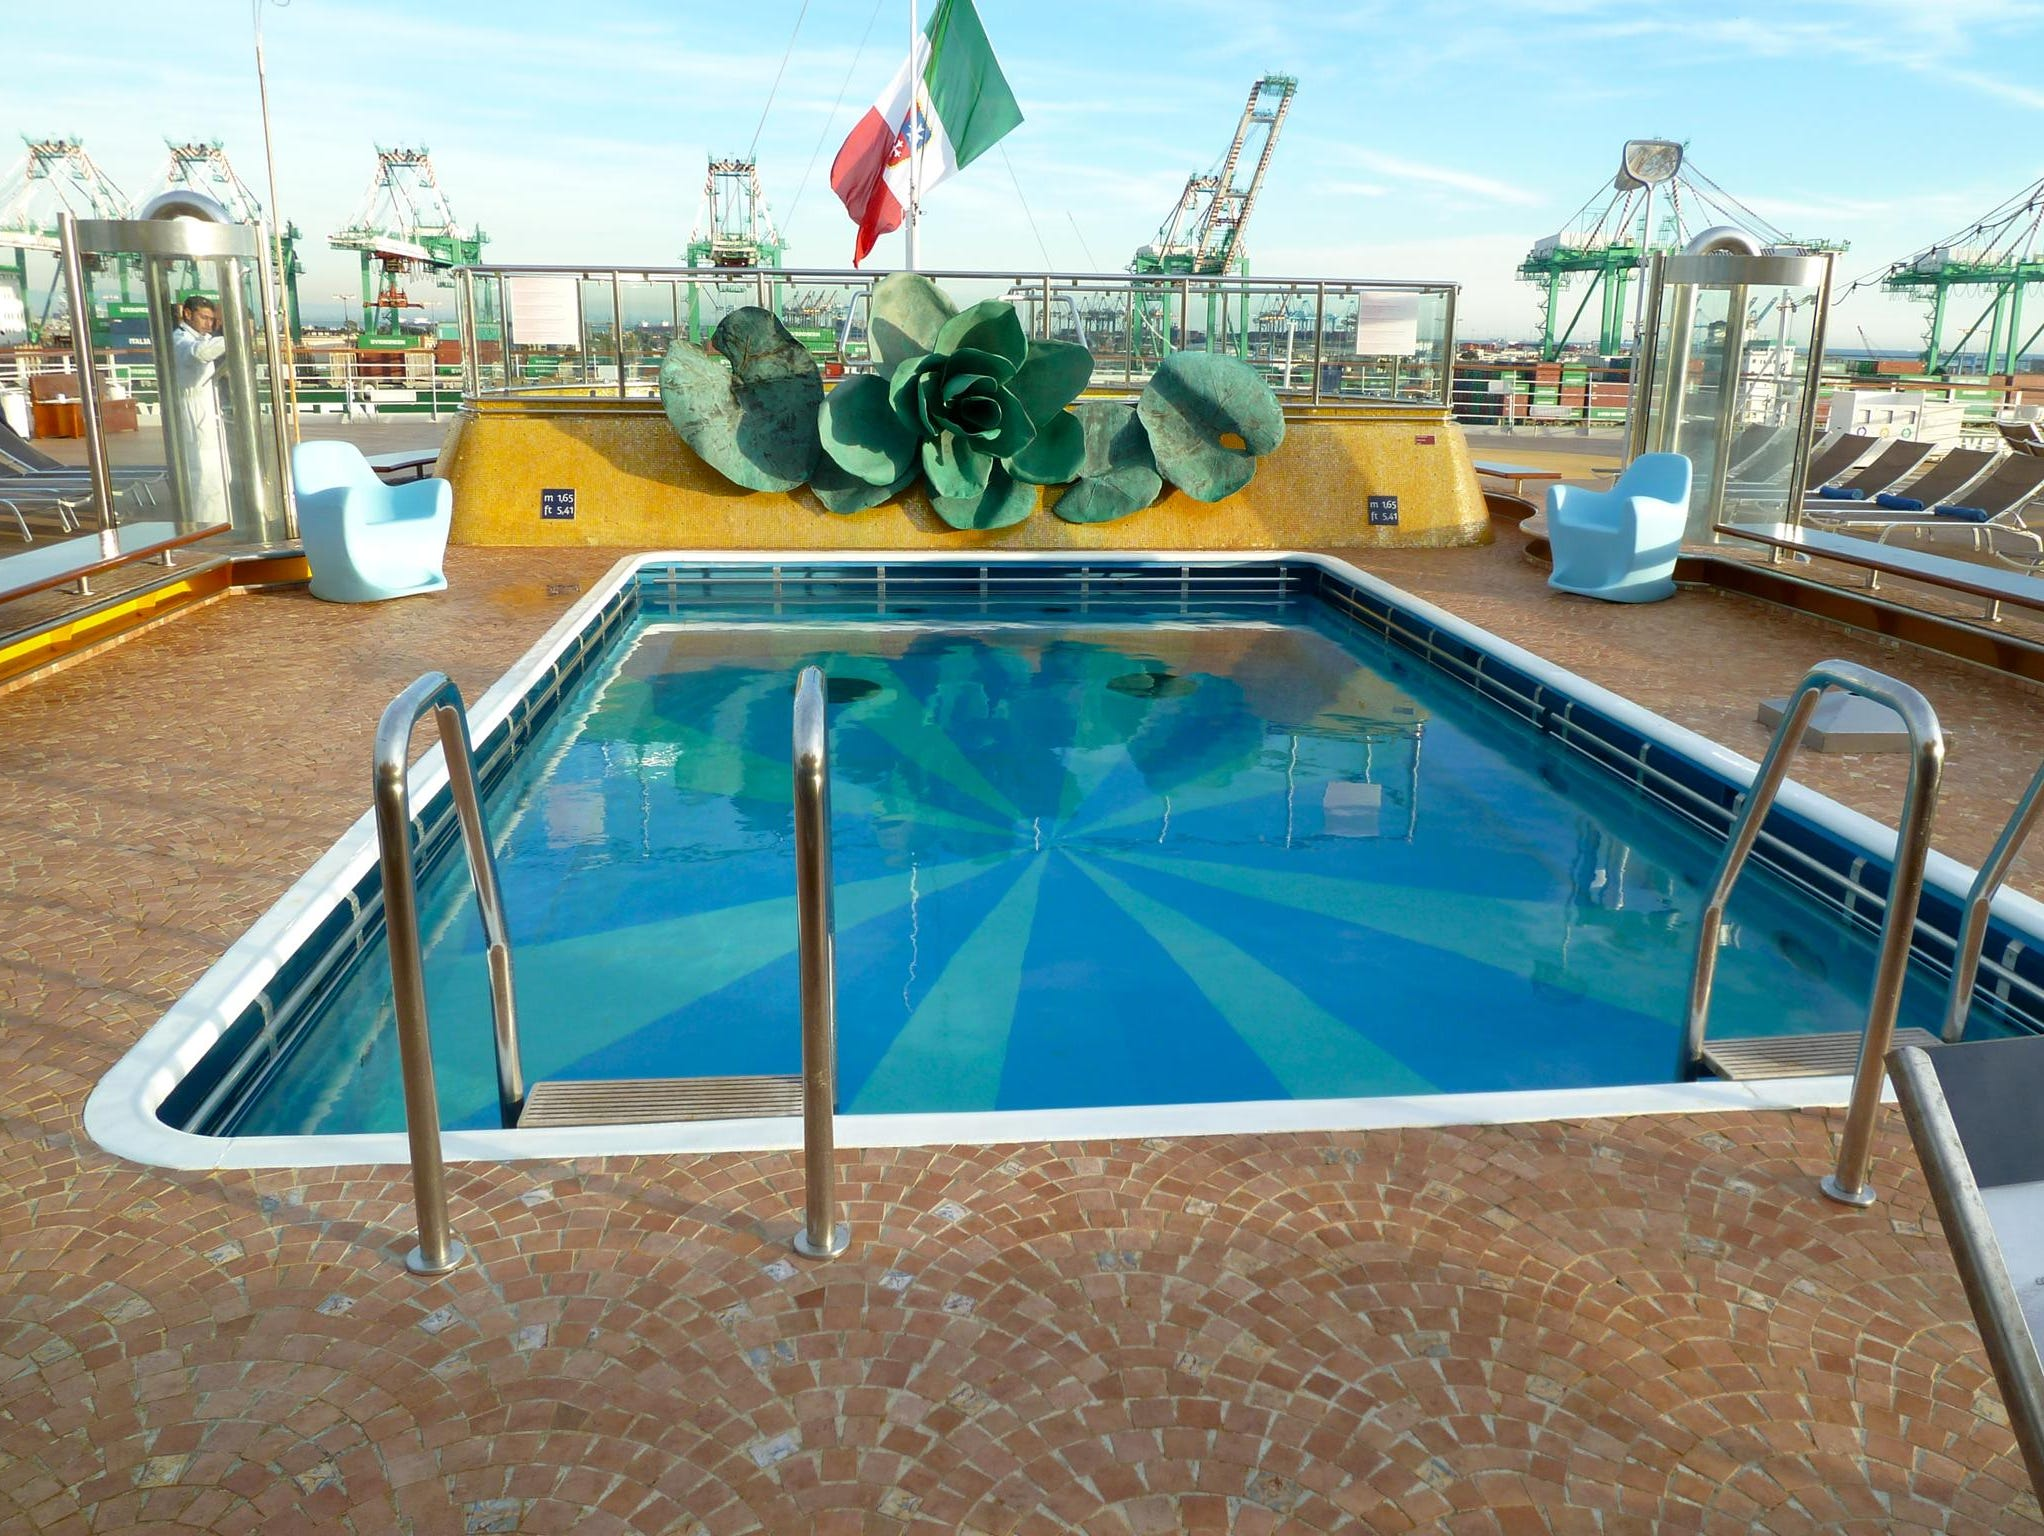 The open-air Lido Acqua Regina pool is the second of the Costa Deliziosa's main pools. Located on aft Orchidea Deck, it is flanked by twin Jacuzzis and a large sunning terrace.